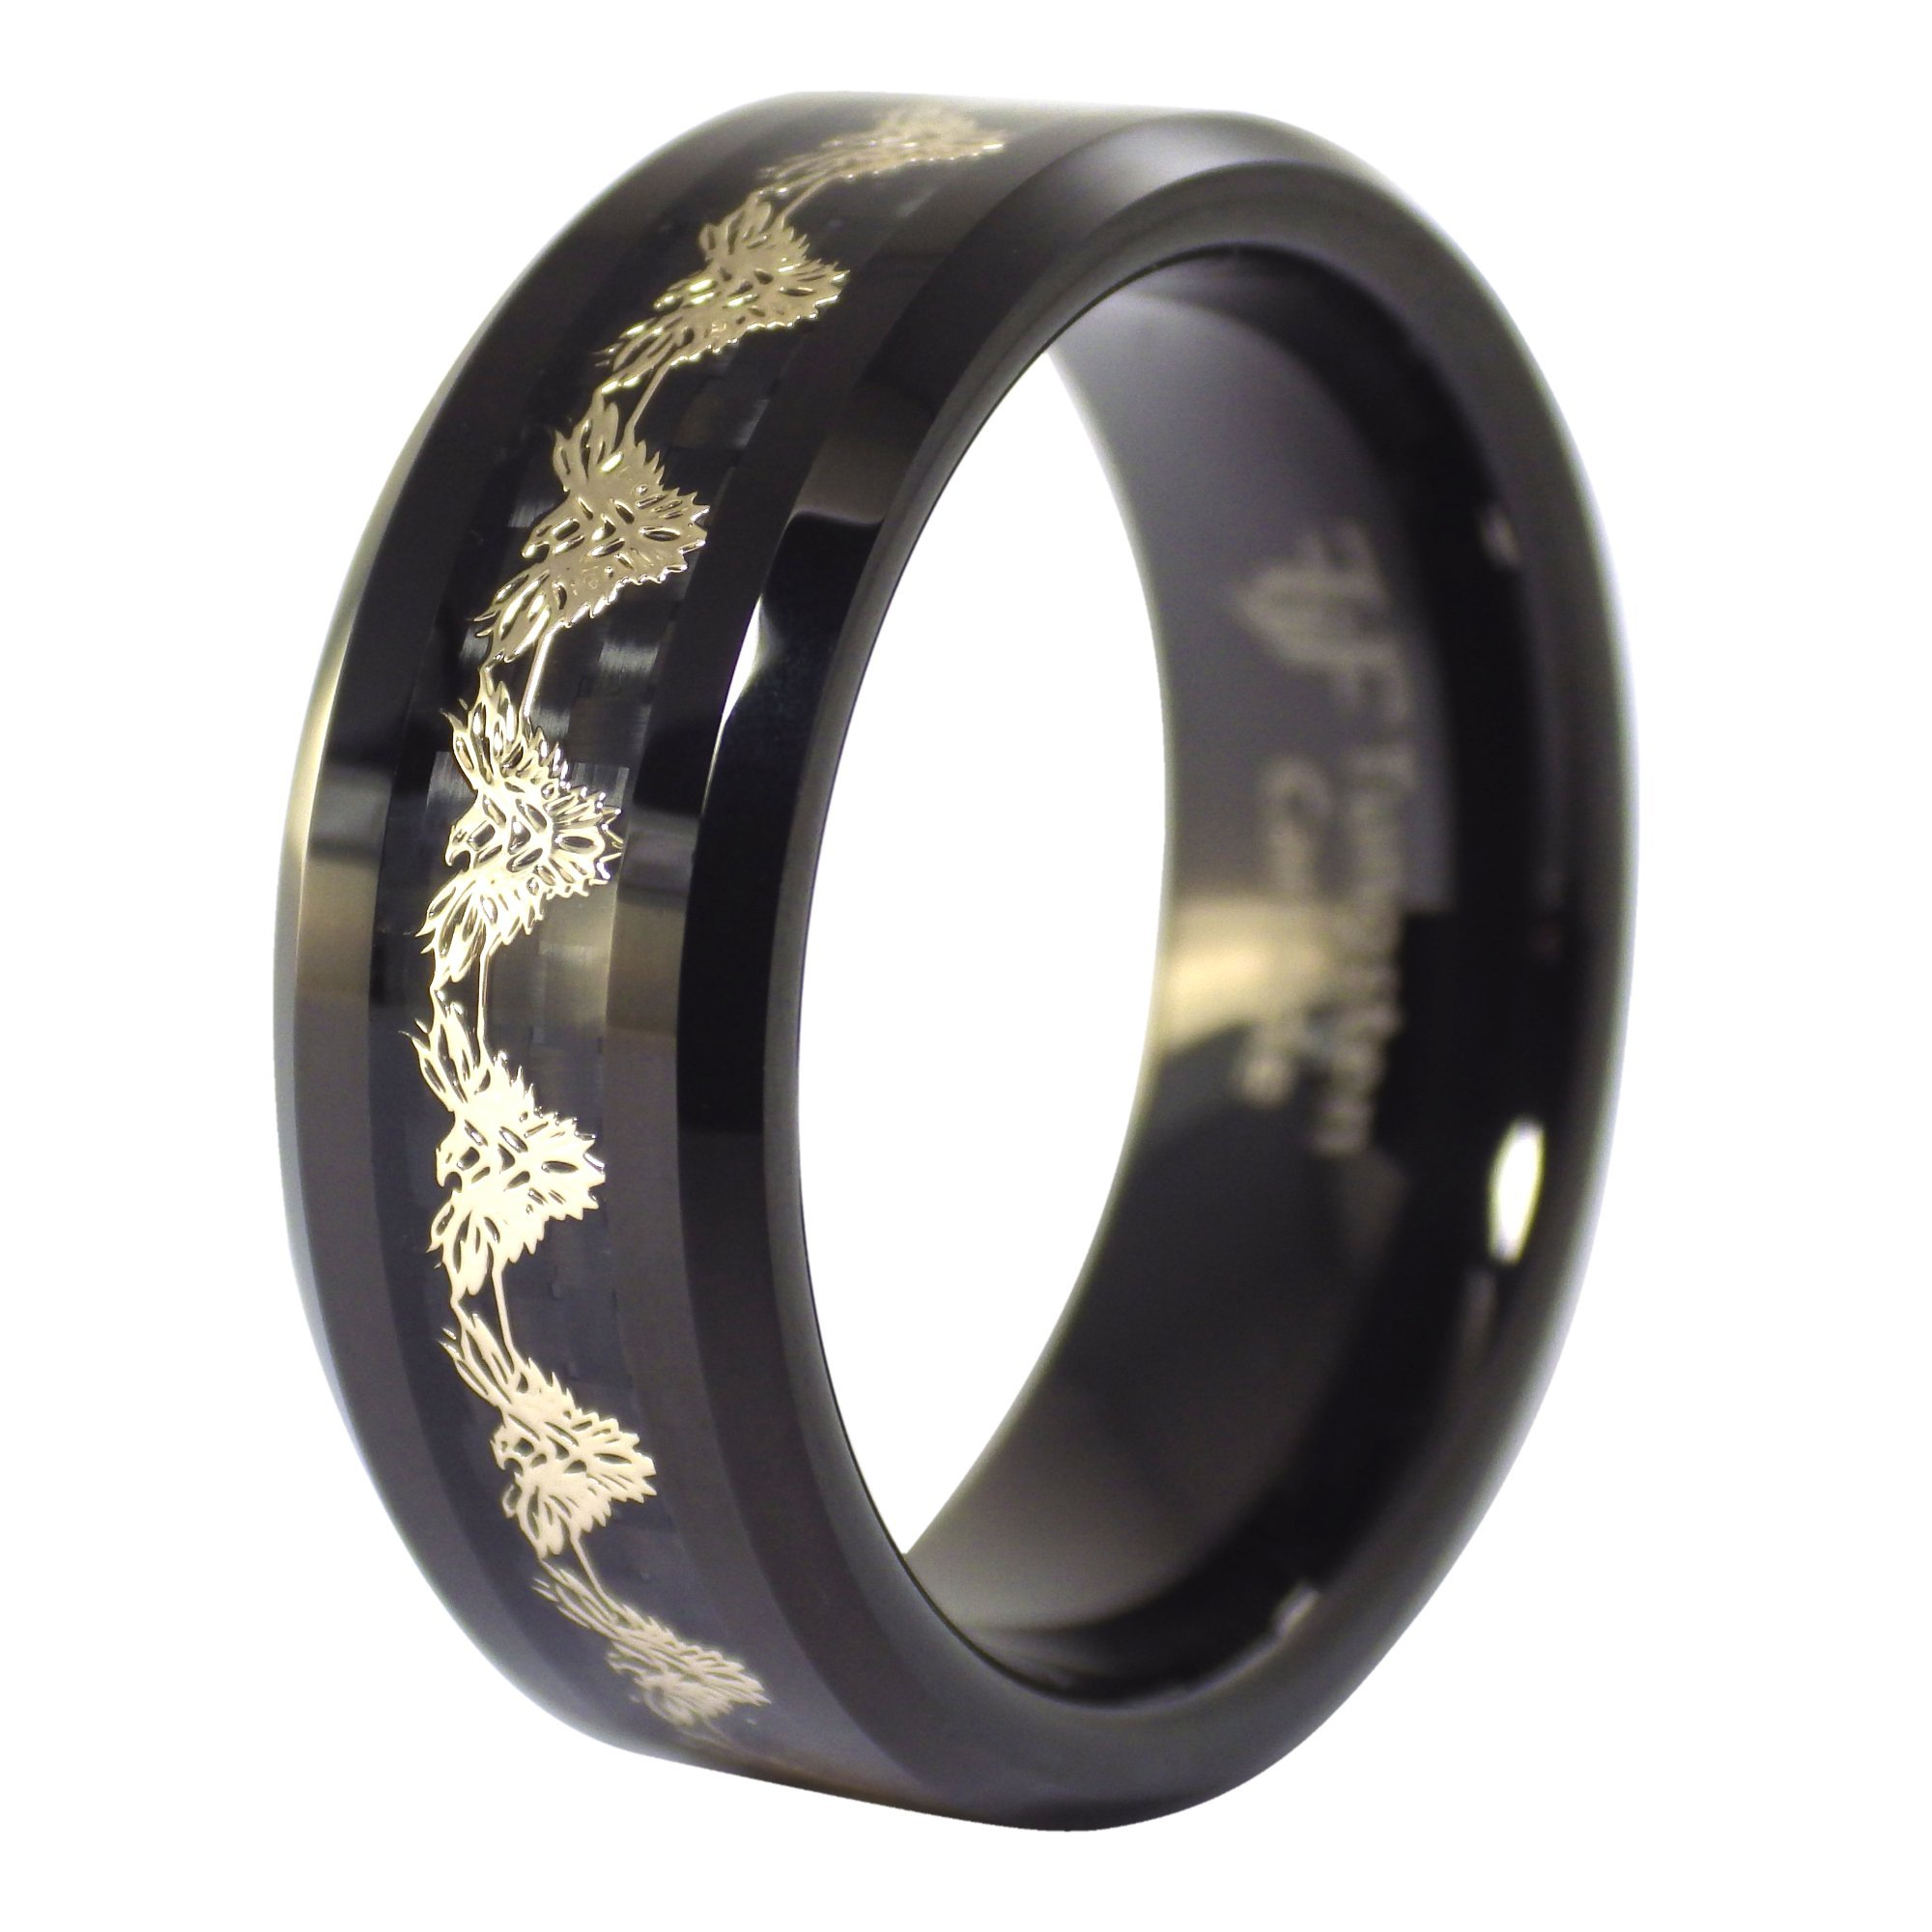 Fantasy Forge Jewelry Black Phoenix Gold Firebird Tungsten Ring 8mm Size 6.5 by Fantasy Forge Jewelry (Image #3)